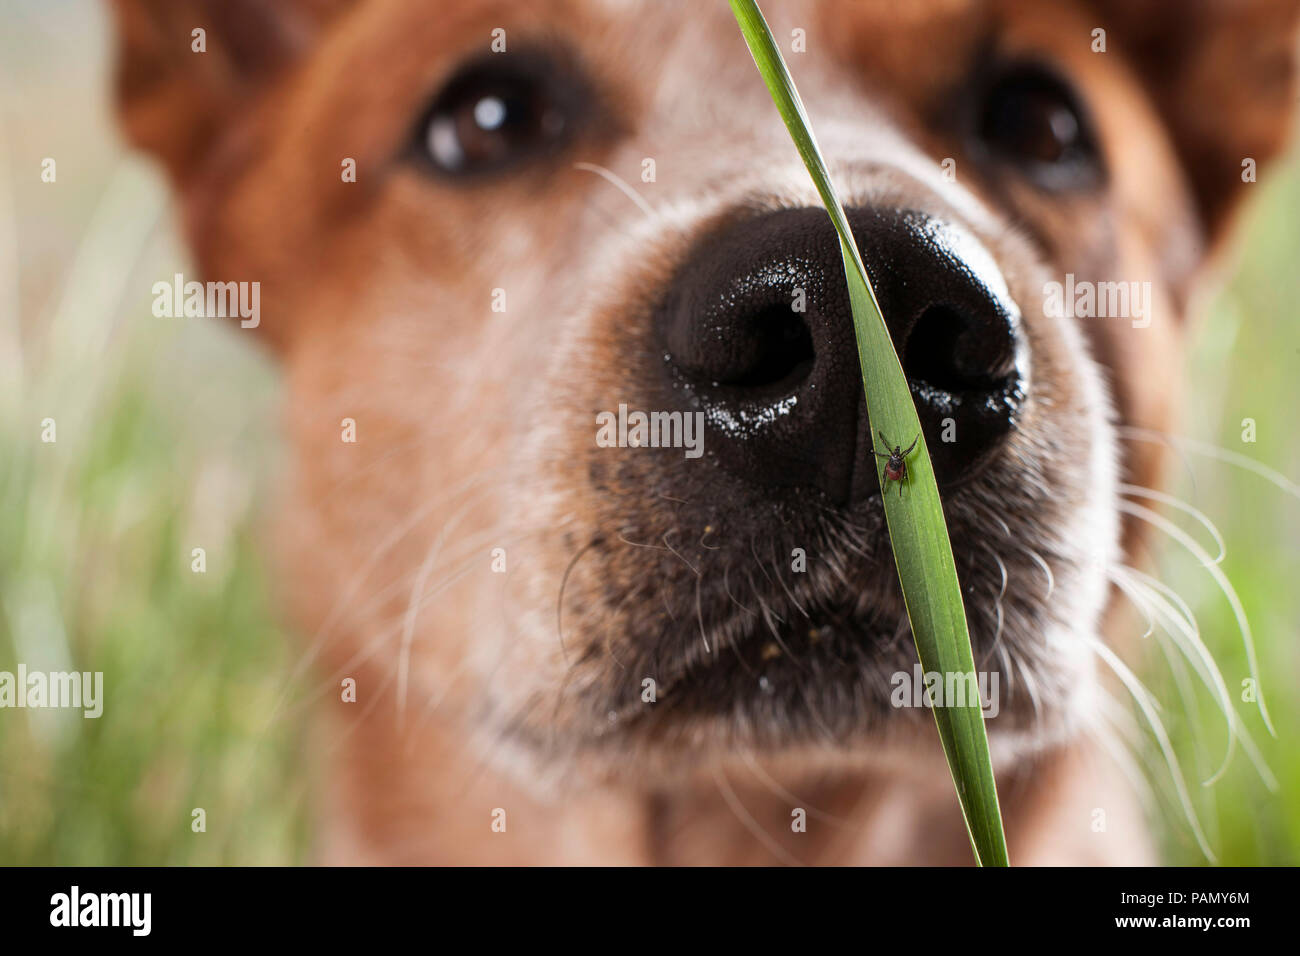 Castor Bean Tick (Ixodes ricinus). Female on a blade of grass with Australian Cattle Dog in background. Germany - Stock Image